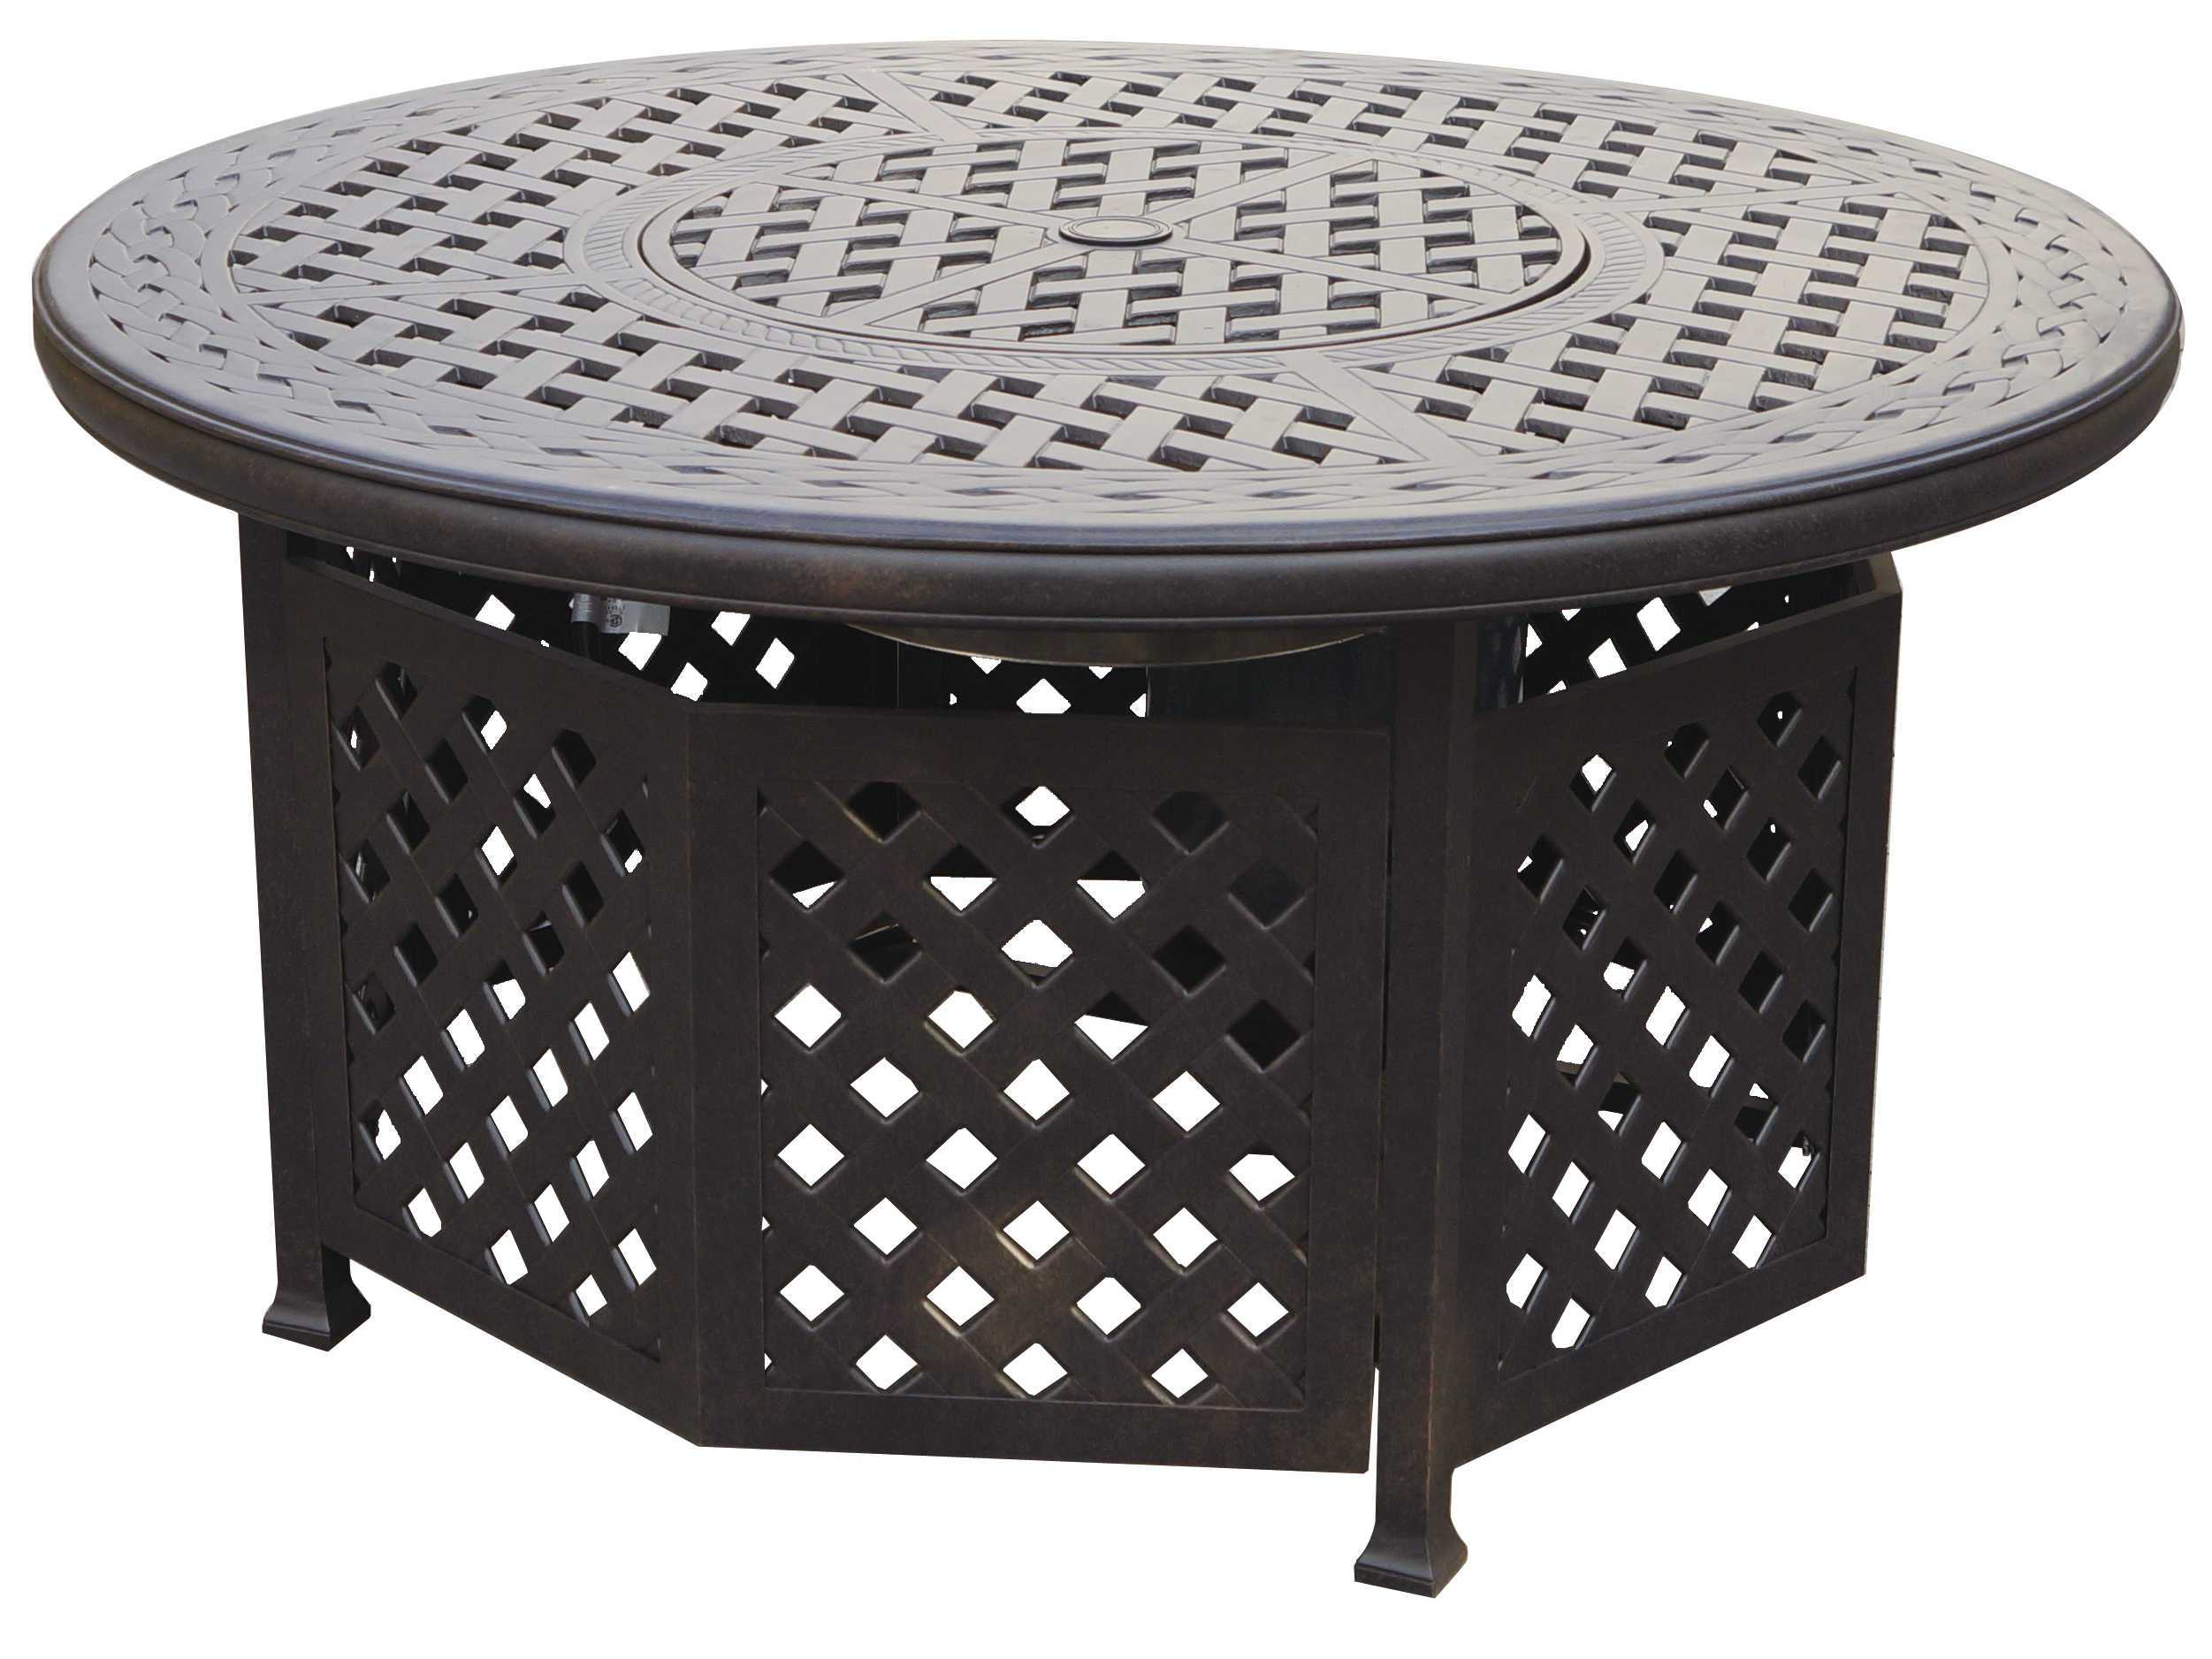 Table Fire Pit : Darlee outdoor living series cast aluminum antique